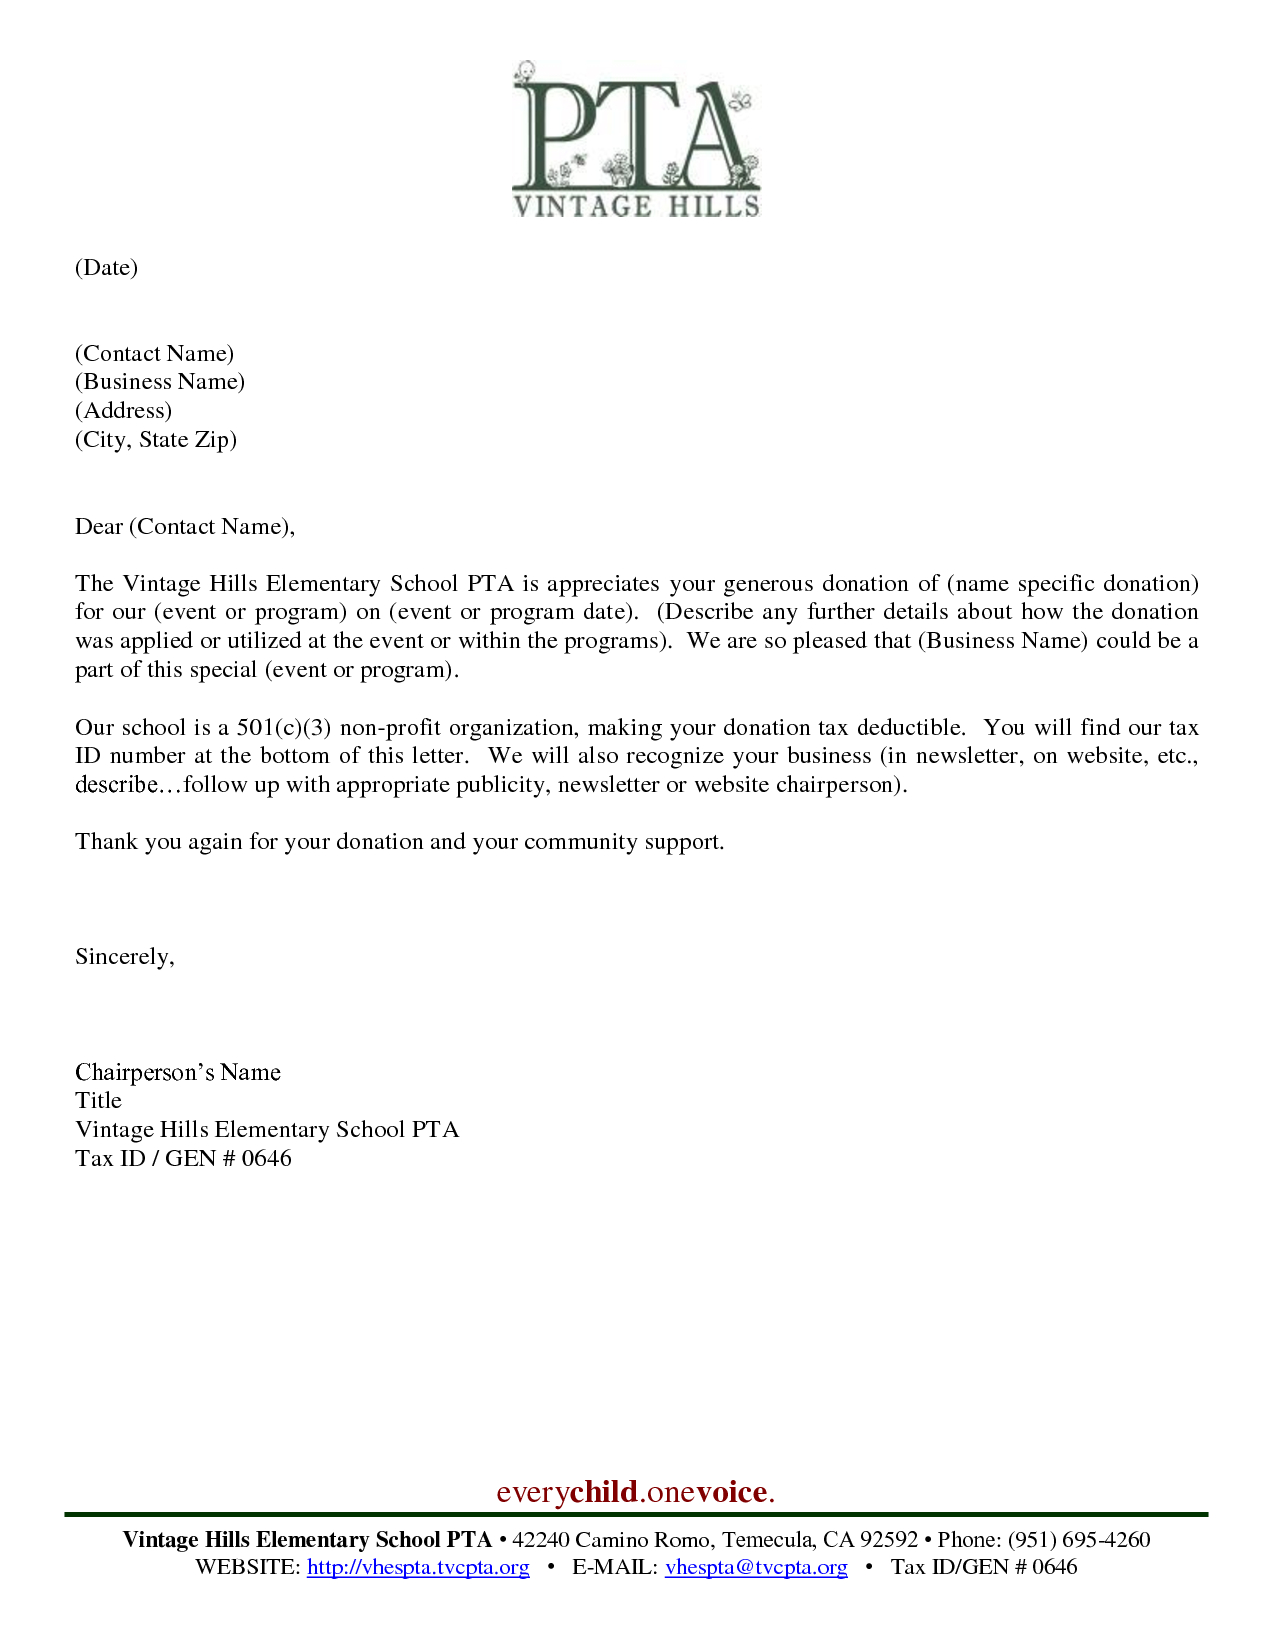 Non Profit Donation Letter Template - Church Thank You Letter for Donation Samples